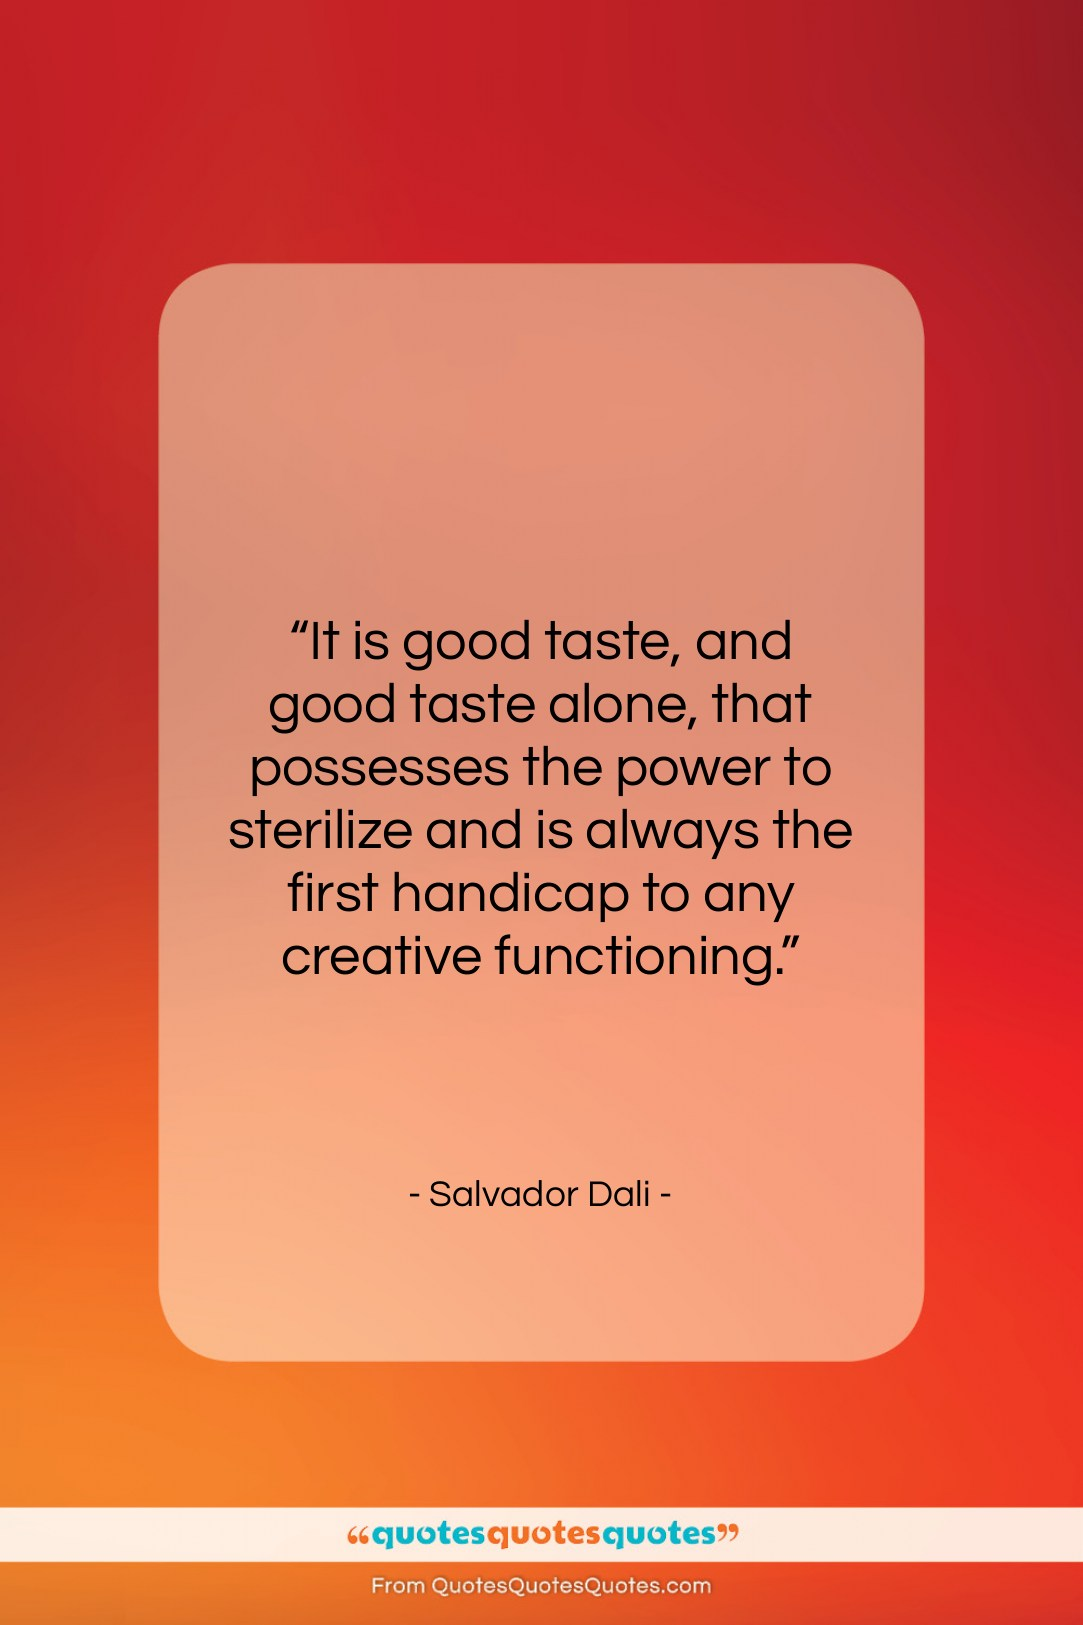 """Salvador Dali quote: """"It is good taste, and good taste…""""- at QuotesQuotesQuotes.com"""